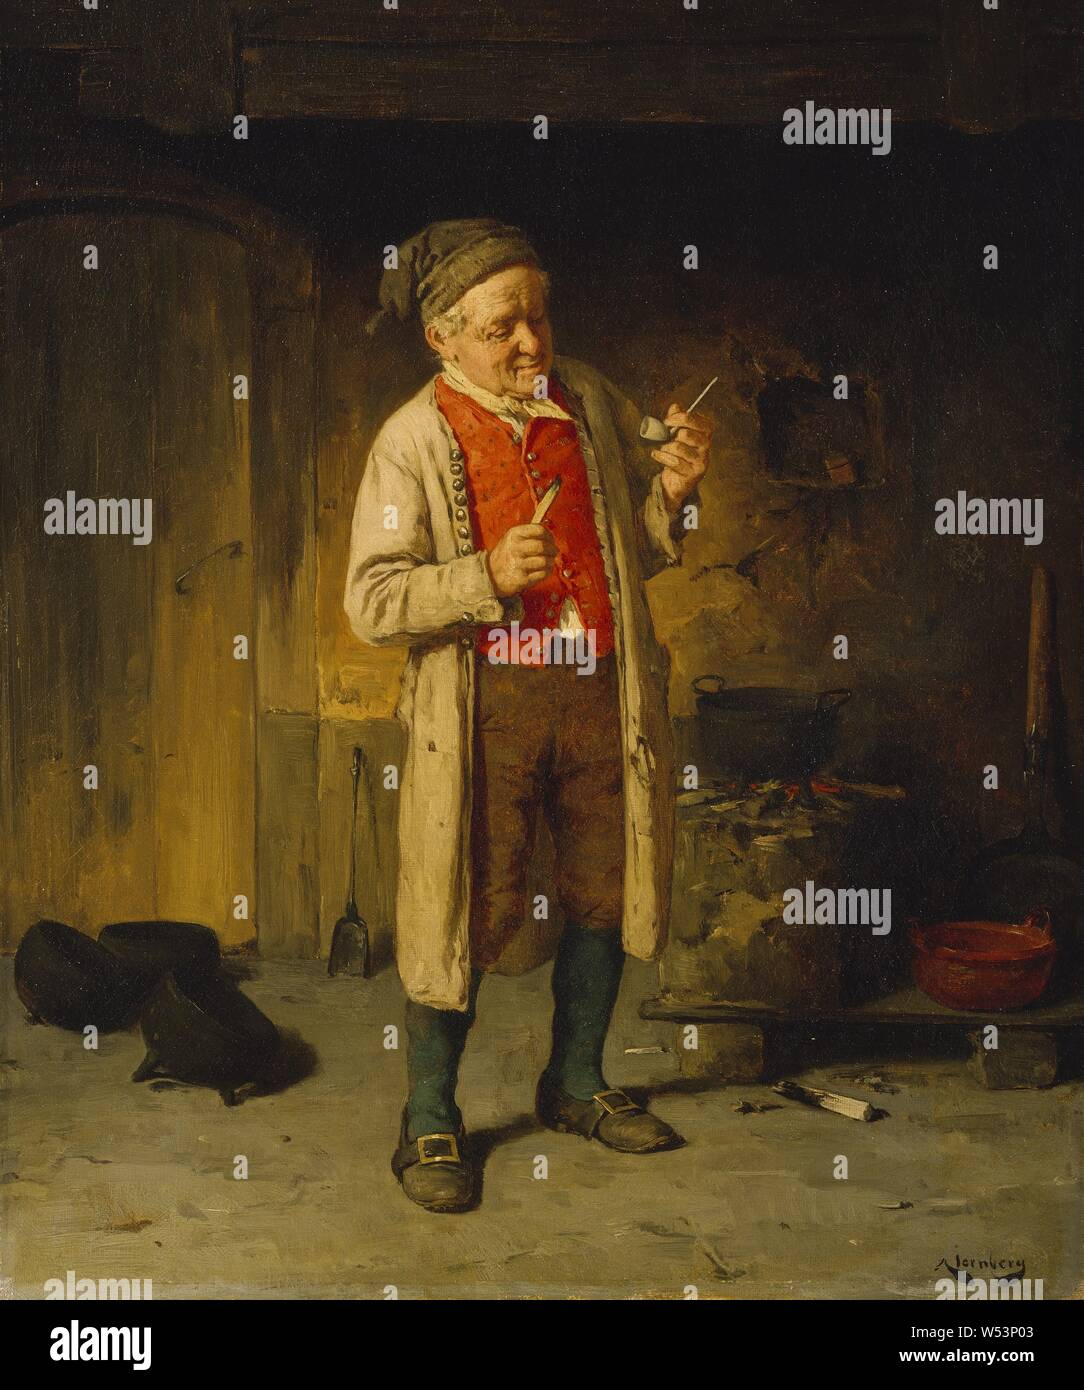 August Jernberg, The New Pipe, The new barrel, painting, Oil